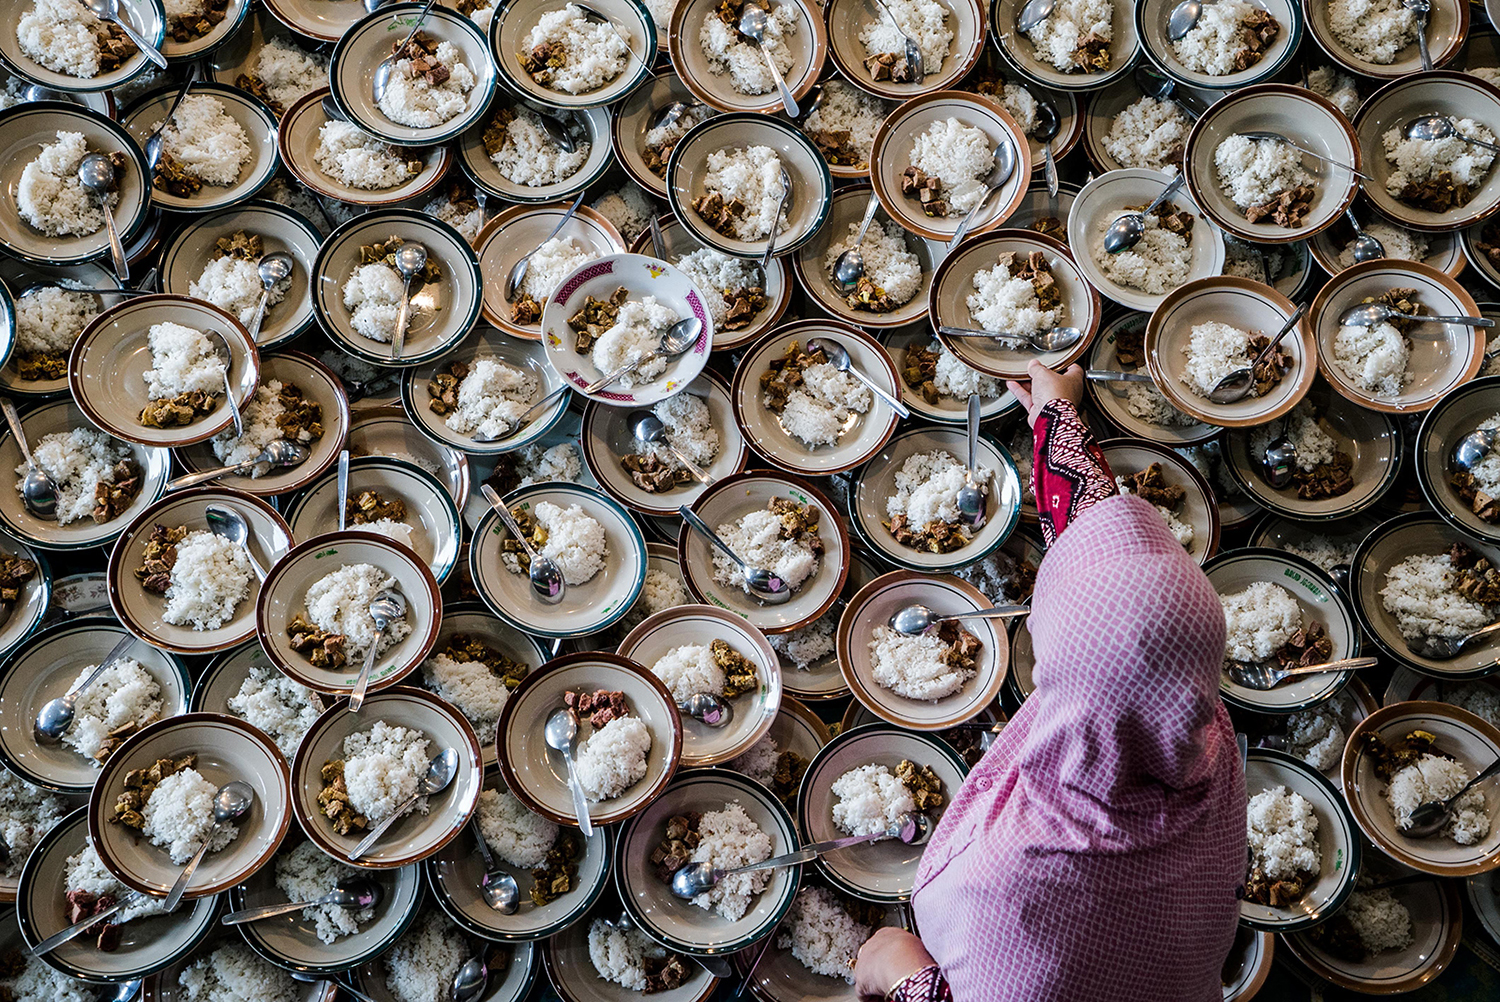 An Indonesian woman prepares meals for Muslims breaking their fast during the holy month of Ramadan at Jogokariyan Mosque in Yogyakarta on May 11. OKA HAMIED/AFP/Getty Images